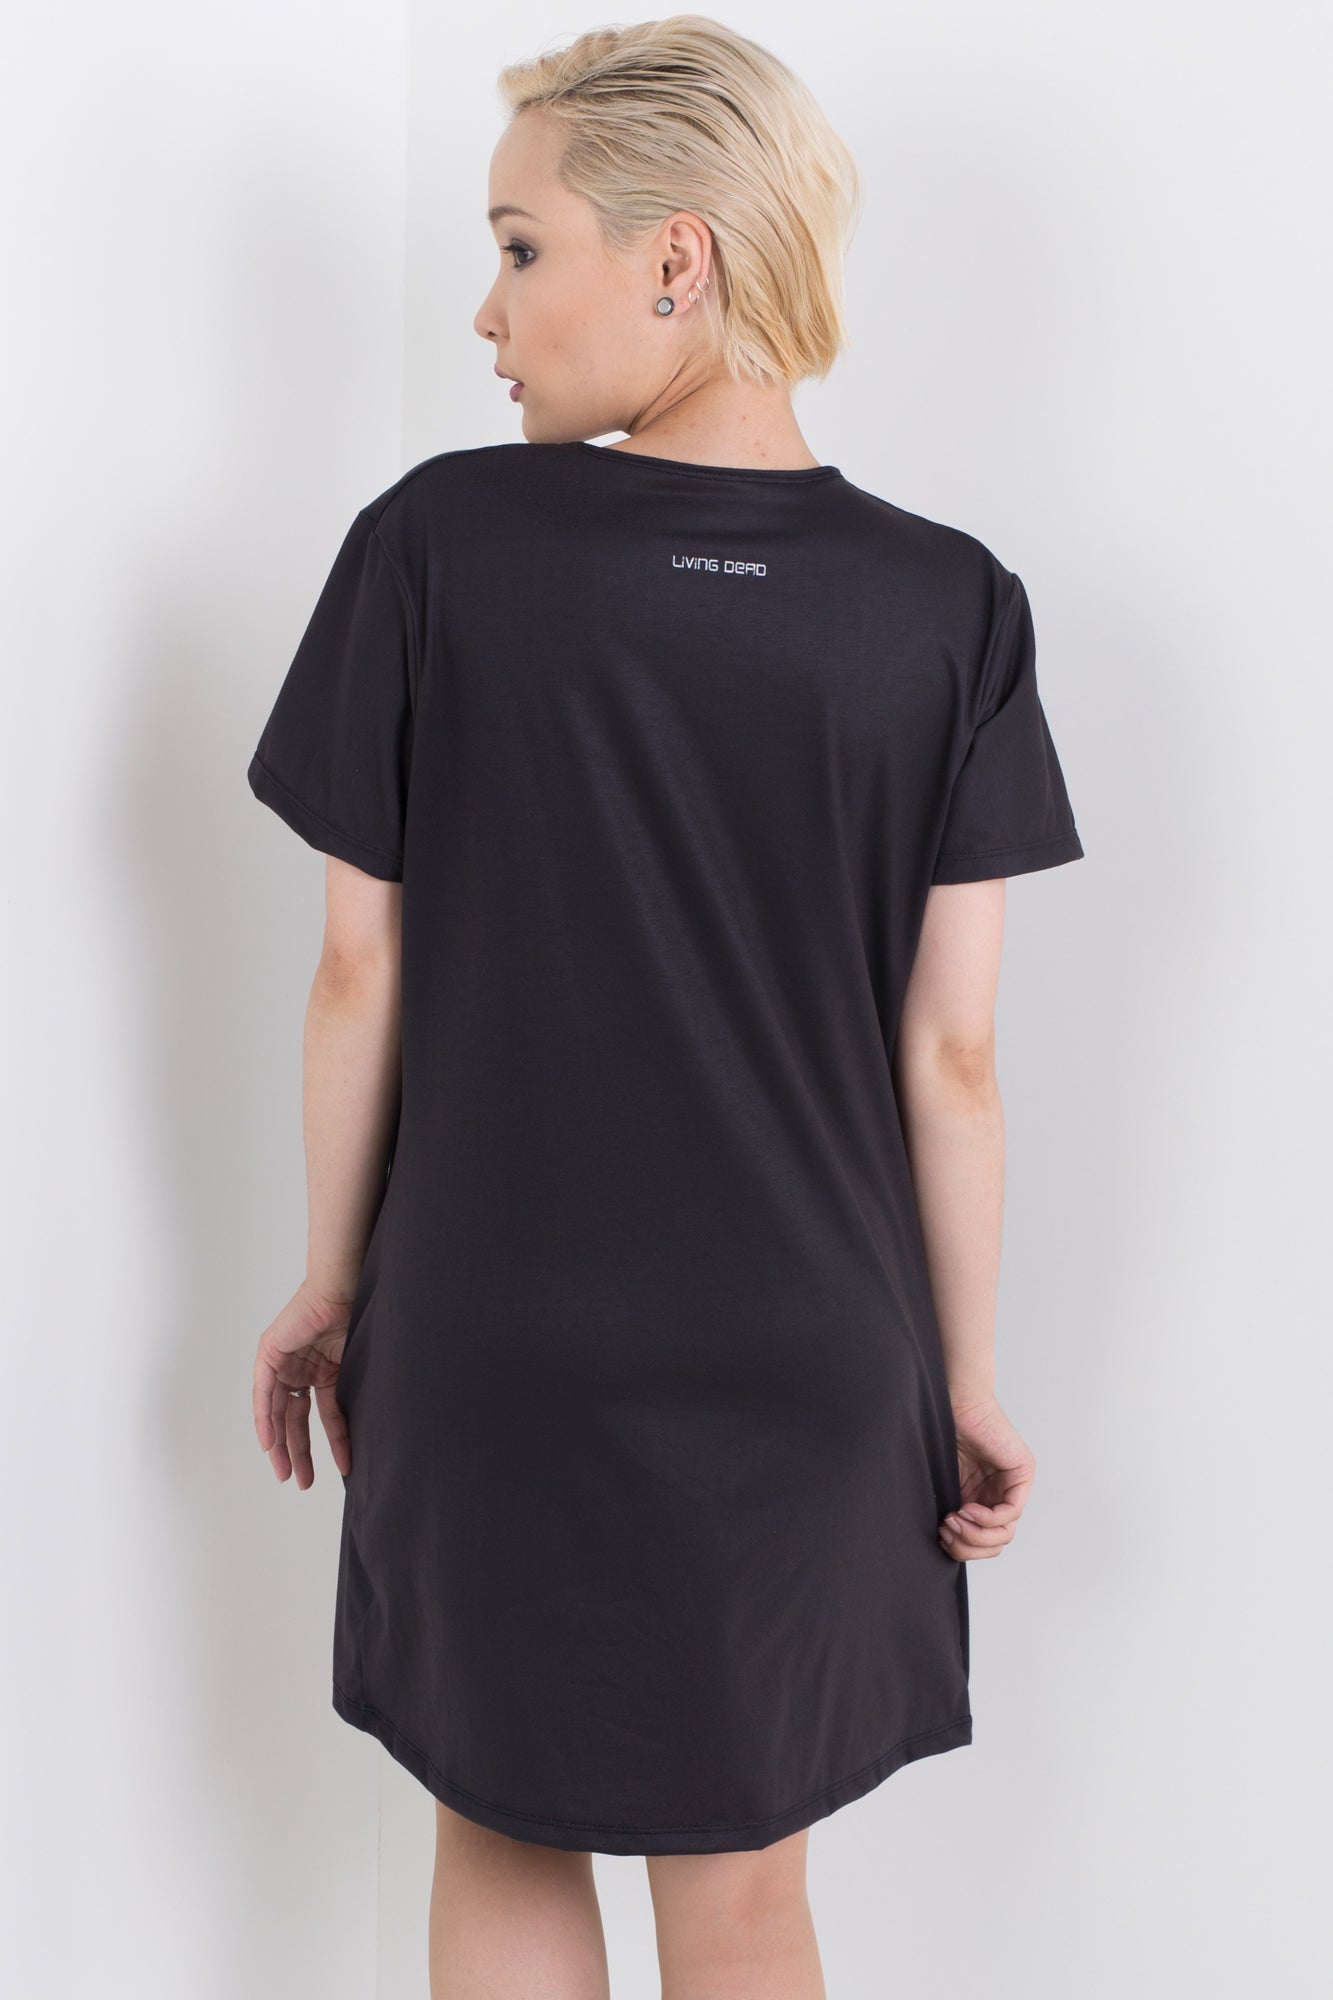 Tarot Card Fool Tee Dress